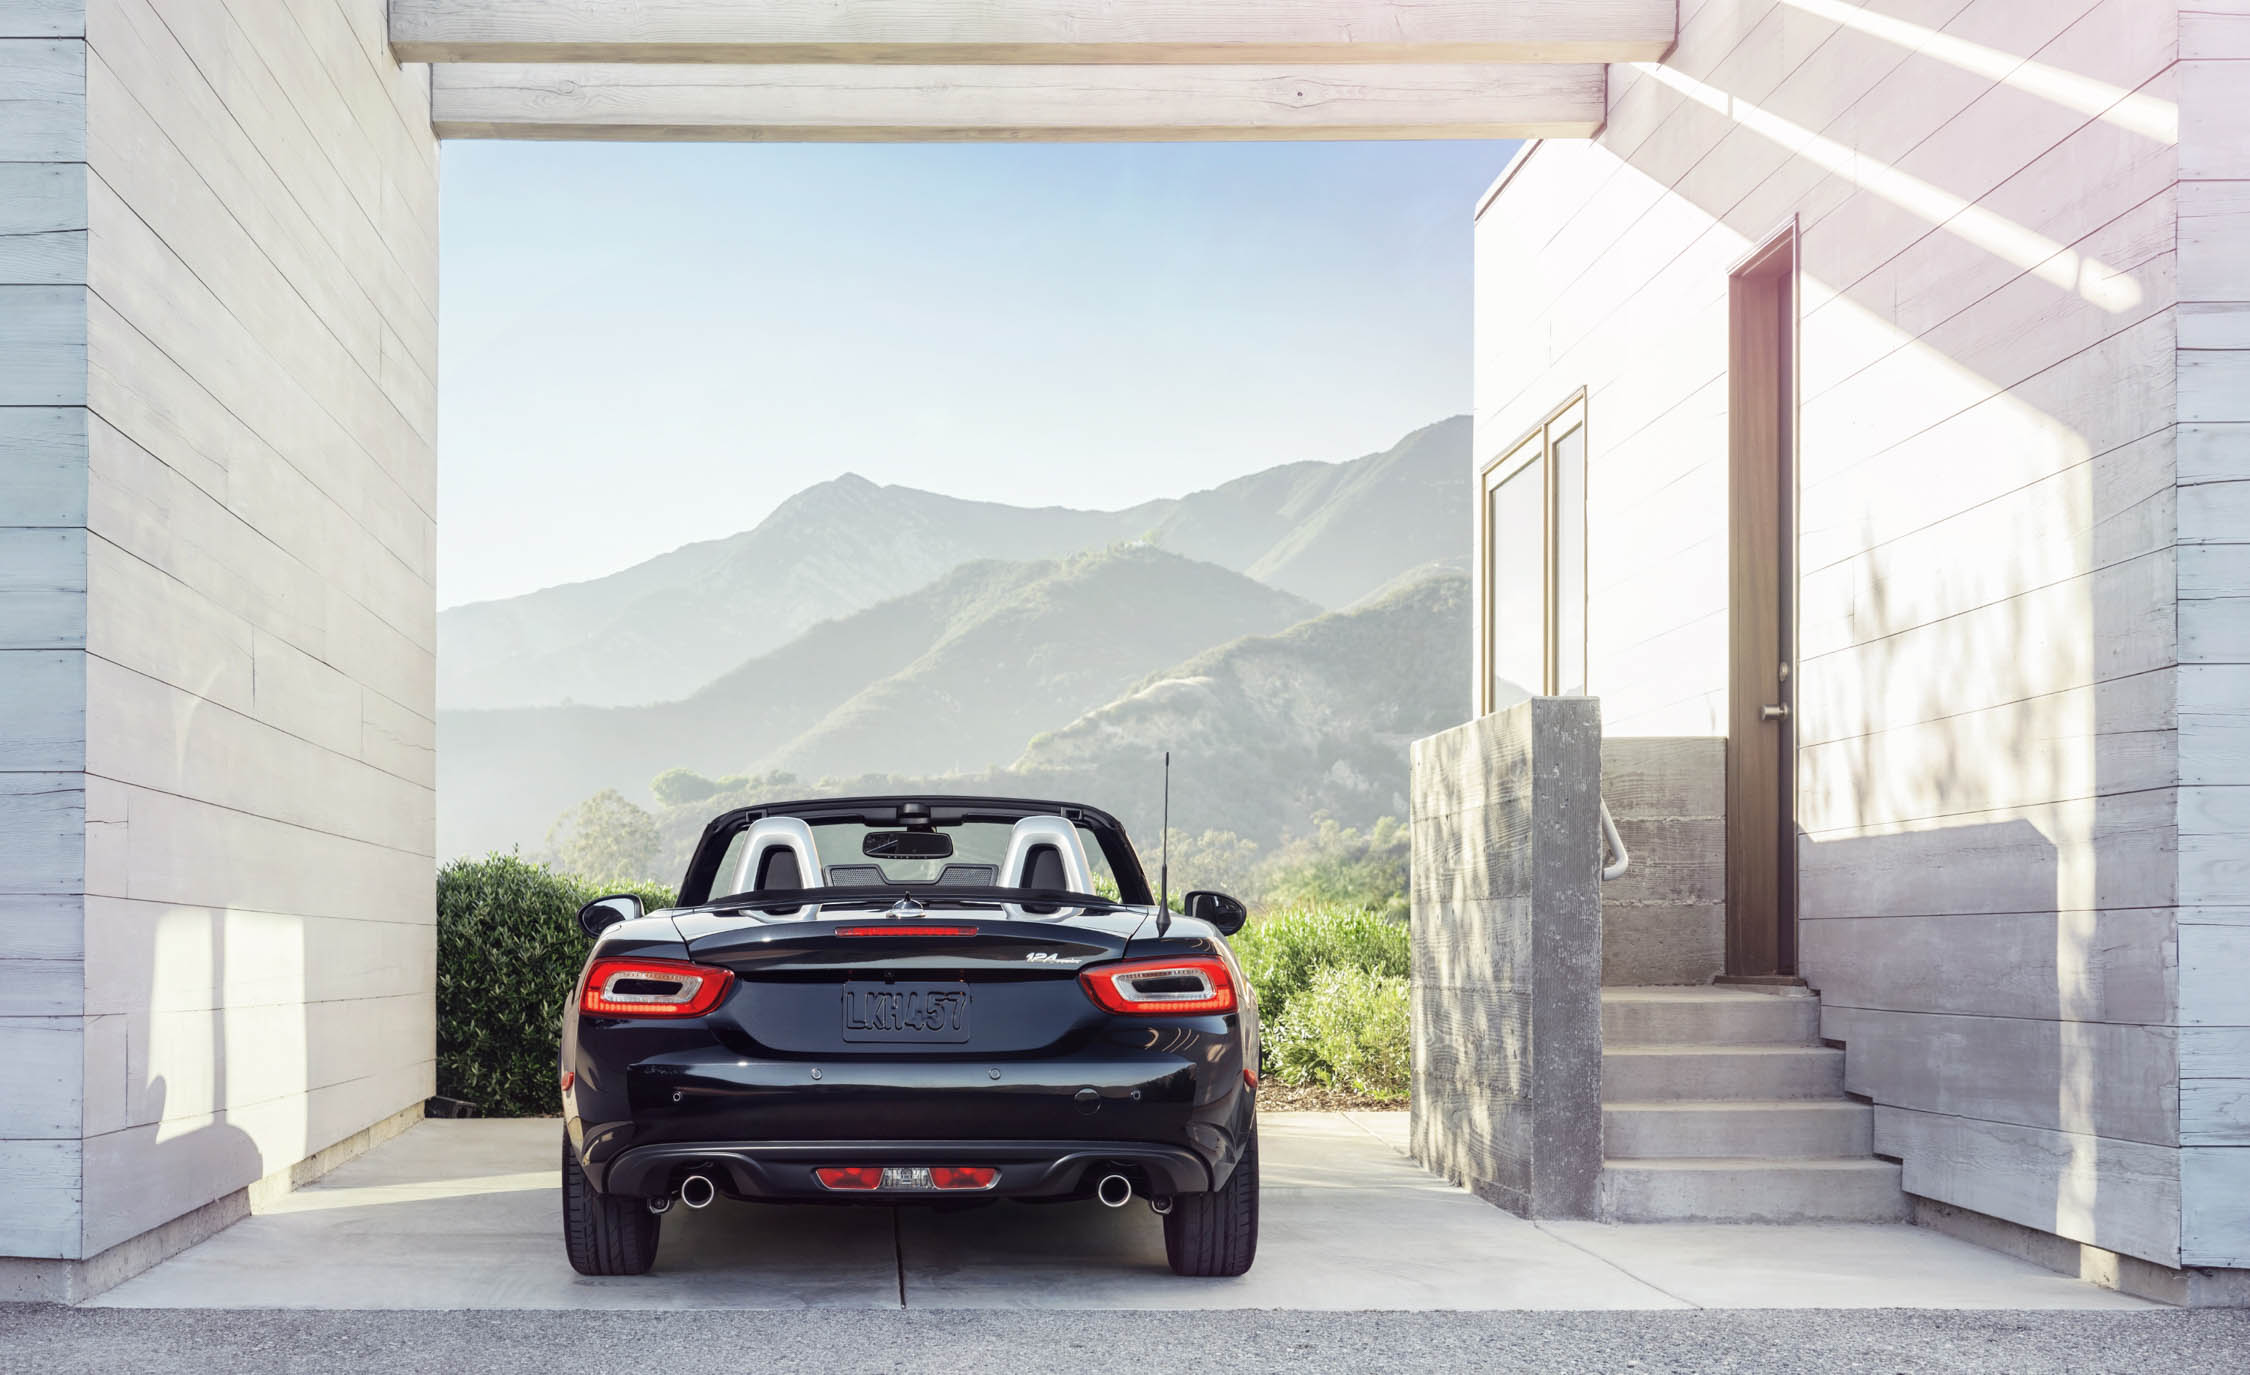 2017 Fiat 124 Spider Rear End Design (View 11 of 23)